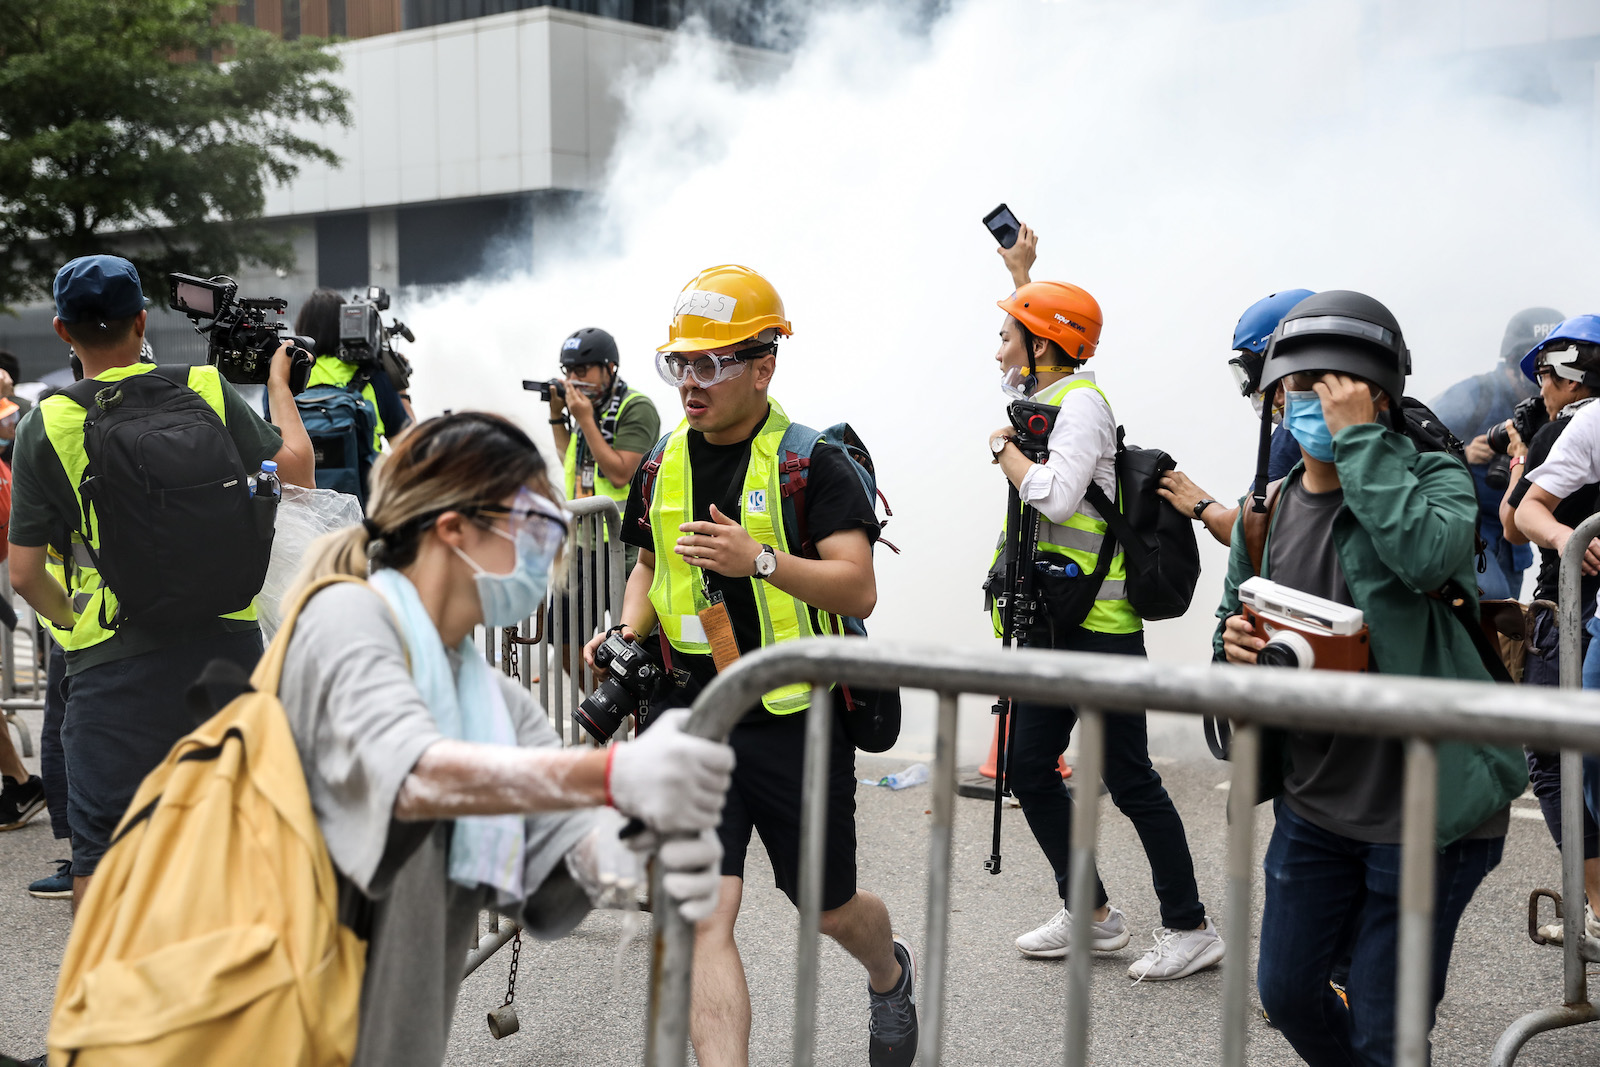 Protesters and members of the media react after police fired tear gas.